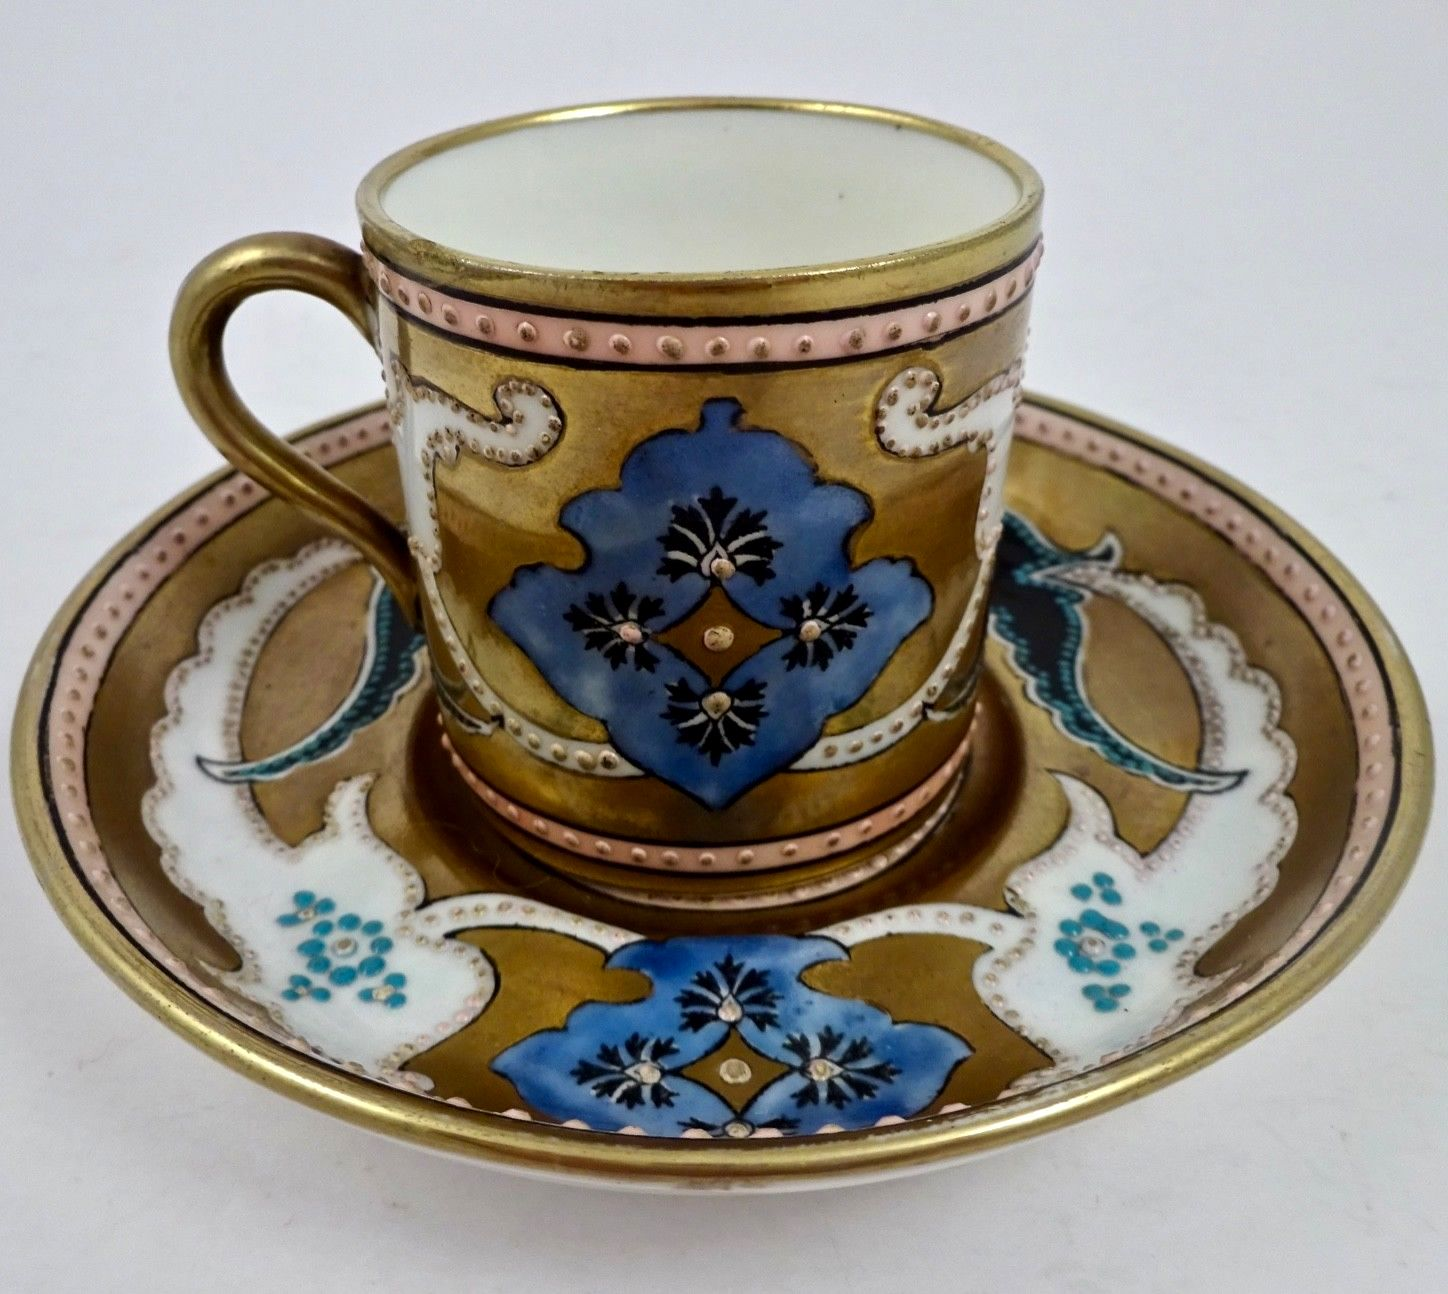 Hard To Find Royal Adderley Demitasse Cup And Saucer Set Jeweled